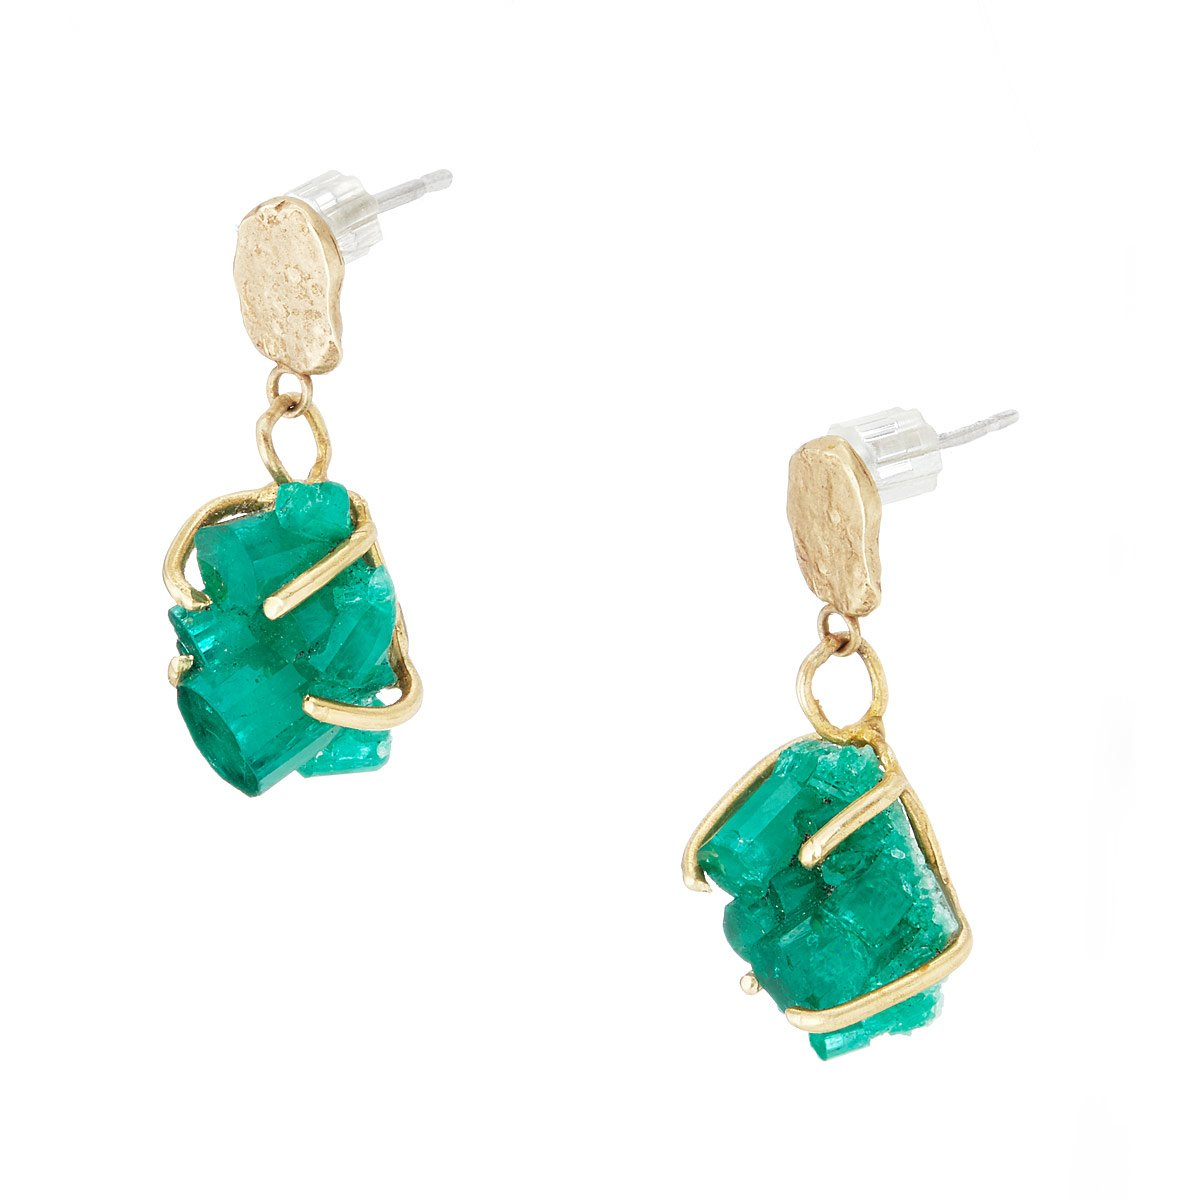 Emerald Crystal Earrings Uncommongoods